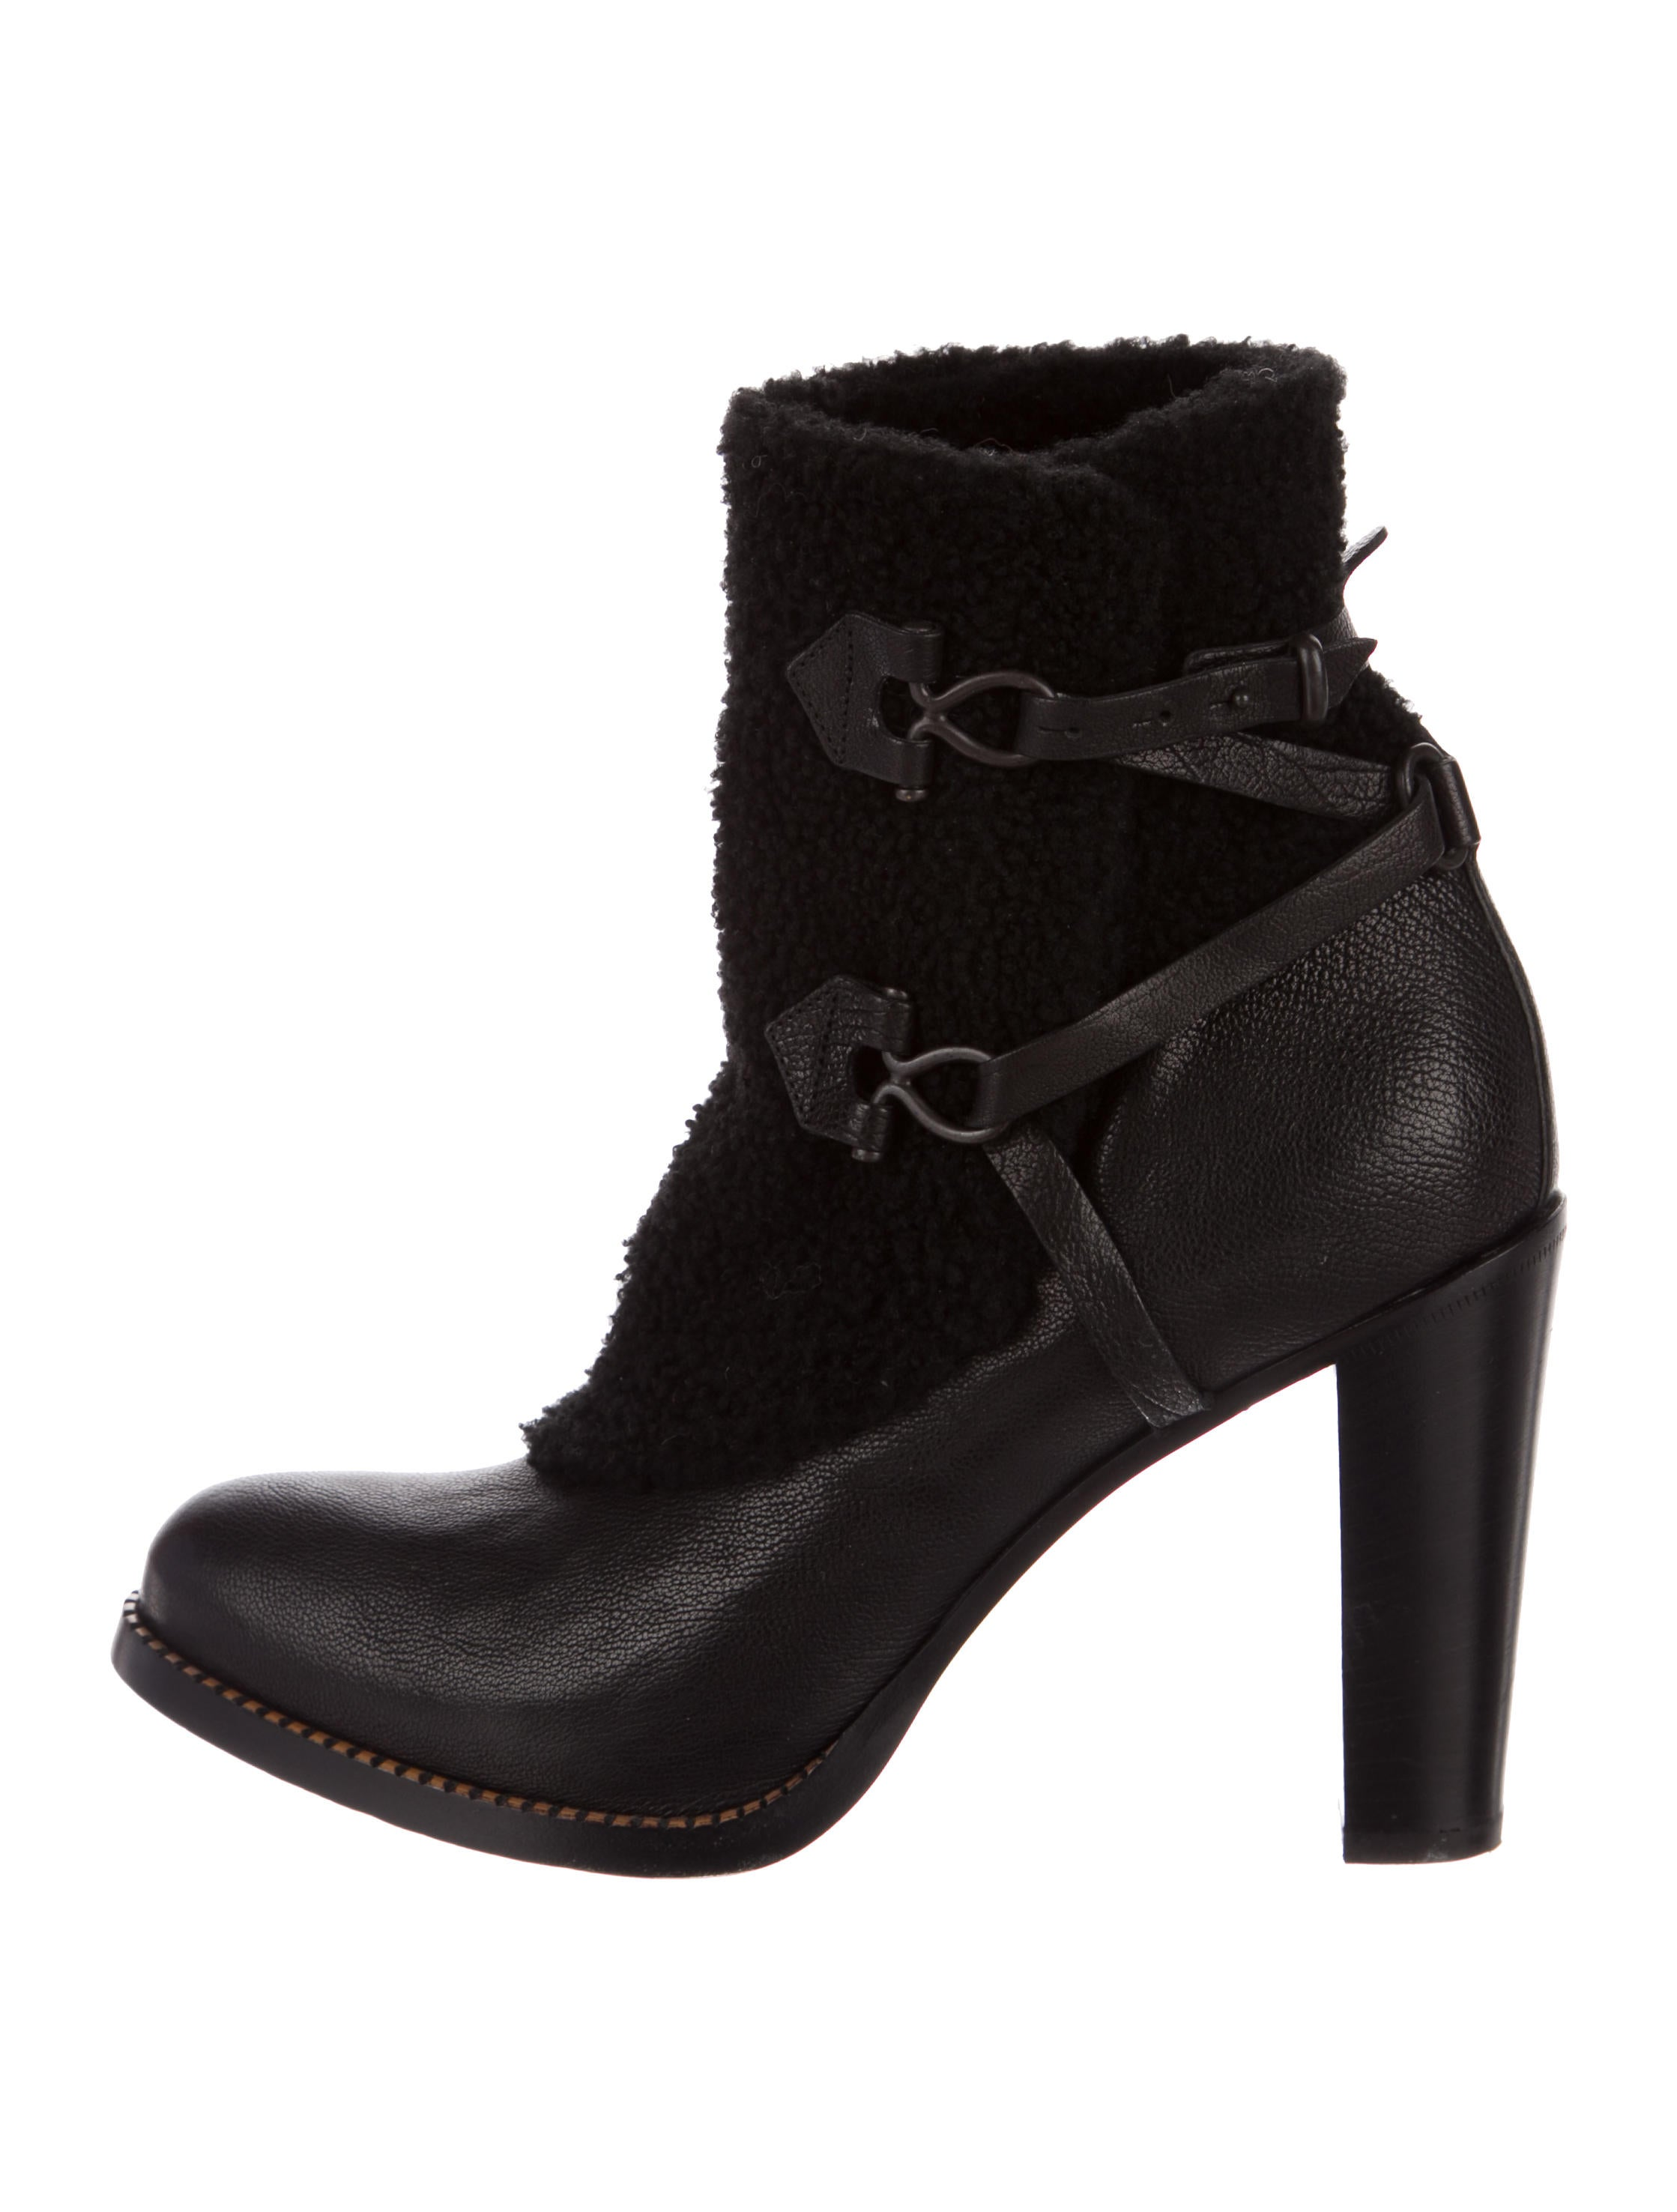 discount eastbay Satore Leather Shearling Ankle Boots sale hot sale free shipping new styles cheap sale 2014 new best sale cheap online FDsj4FUPR